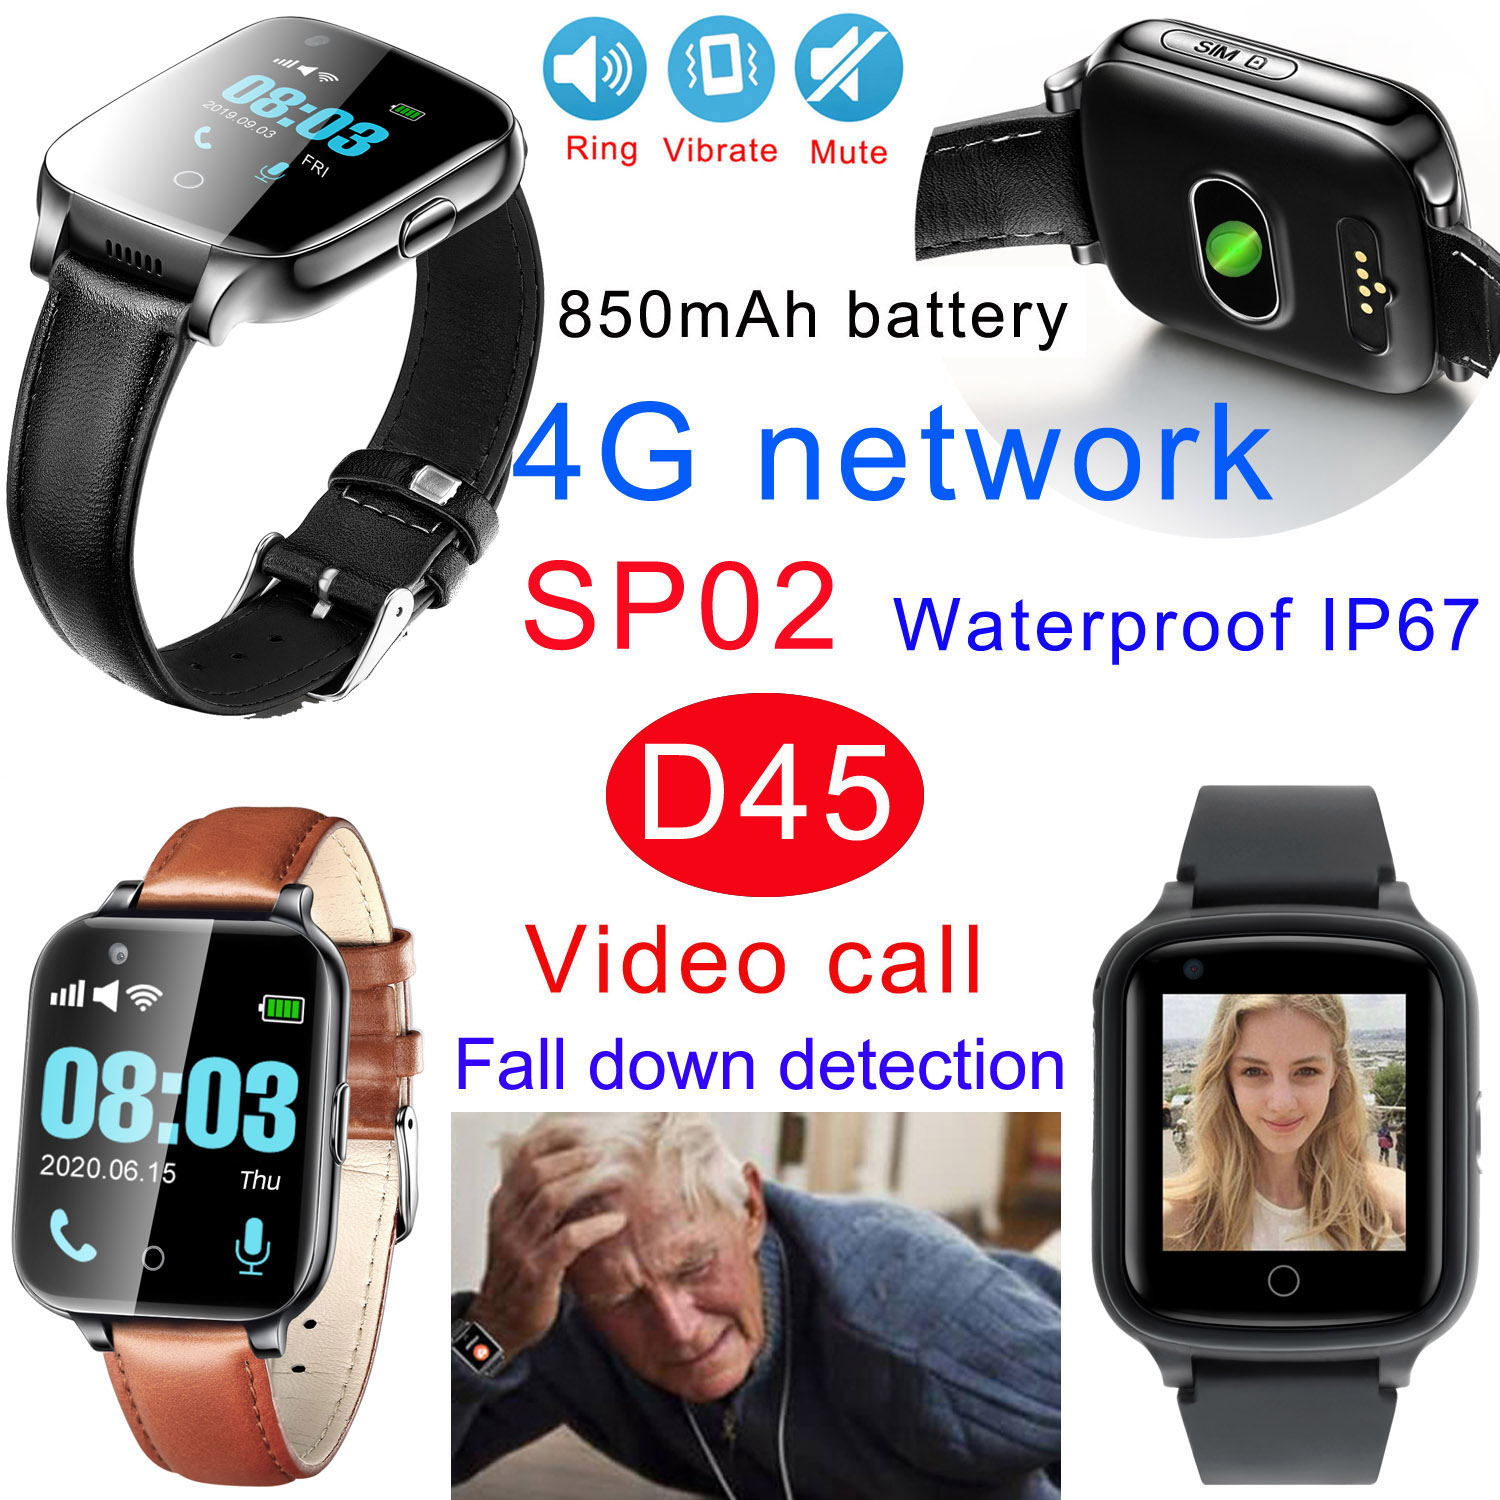 850mAh Battery 4G Fall Down Alert GPS Tracker Watch with Video Call